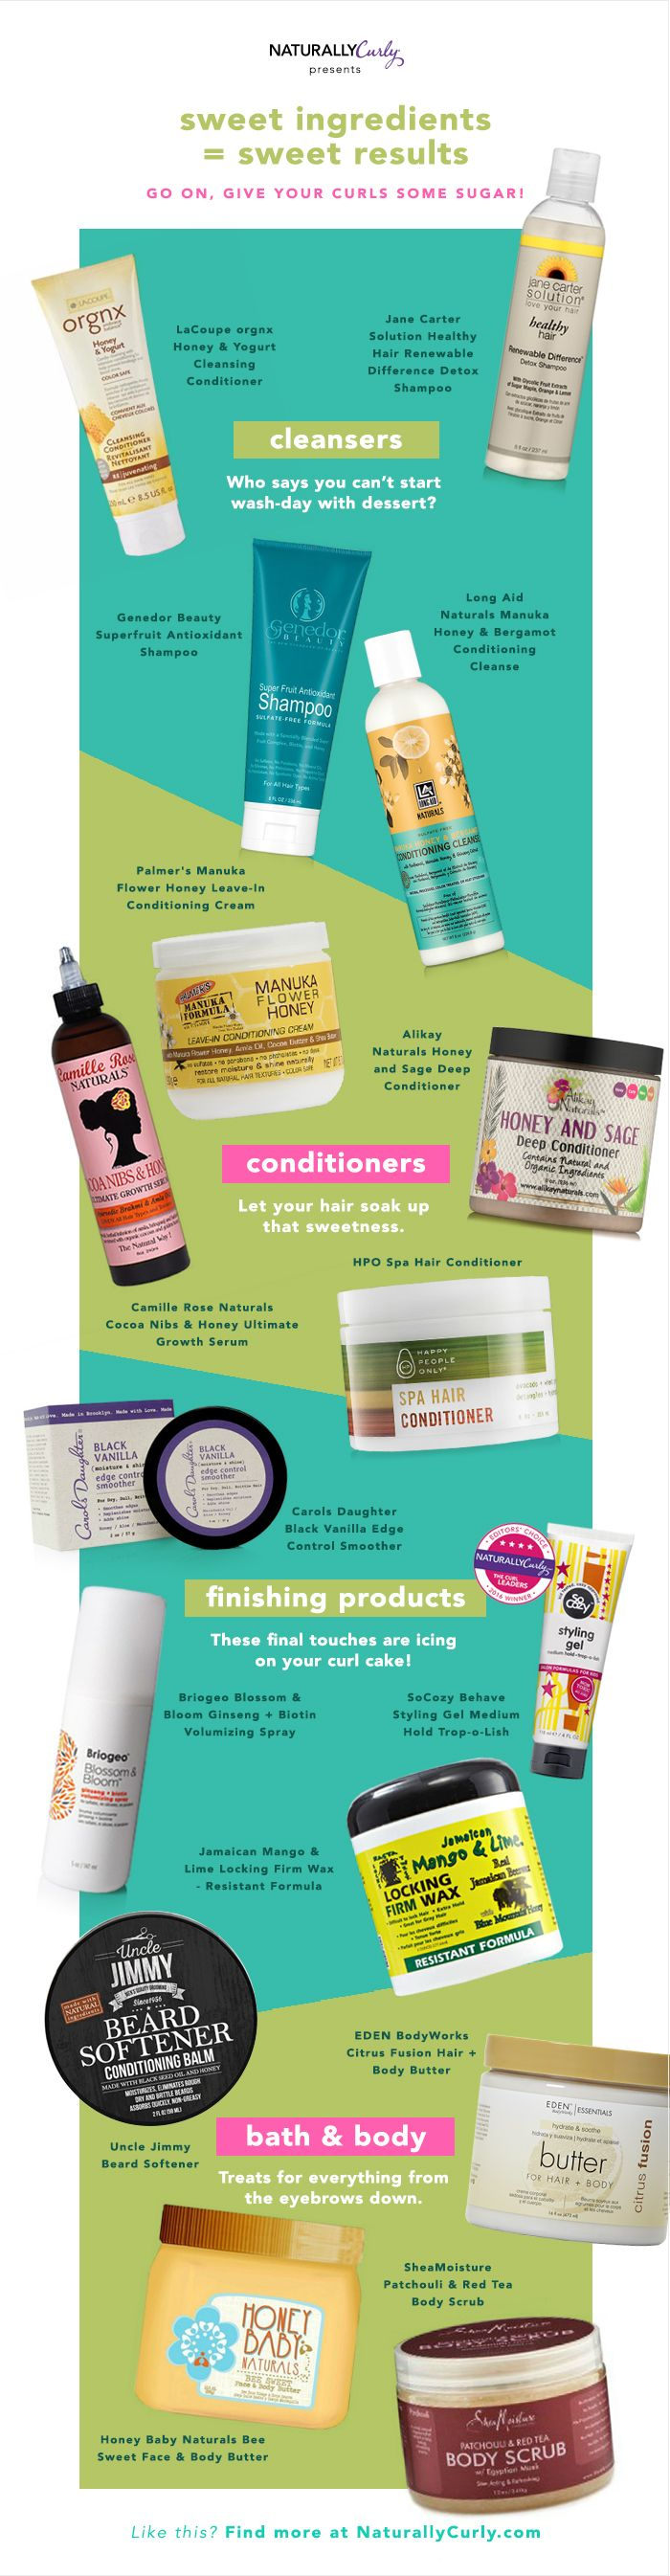 An infographic with some of the offerings in the Sweet Curls shop linked below.